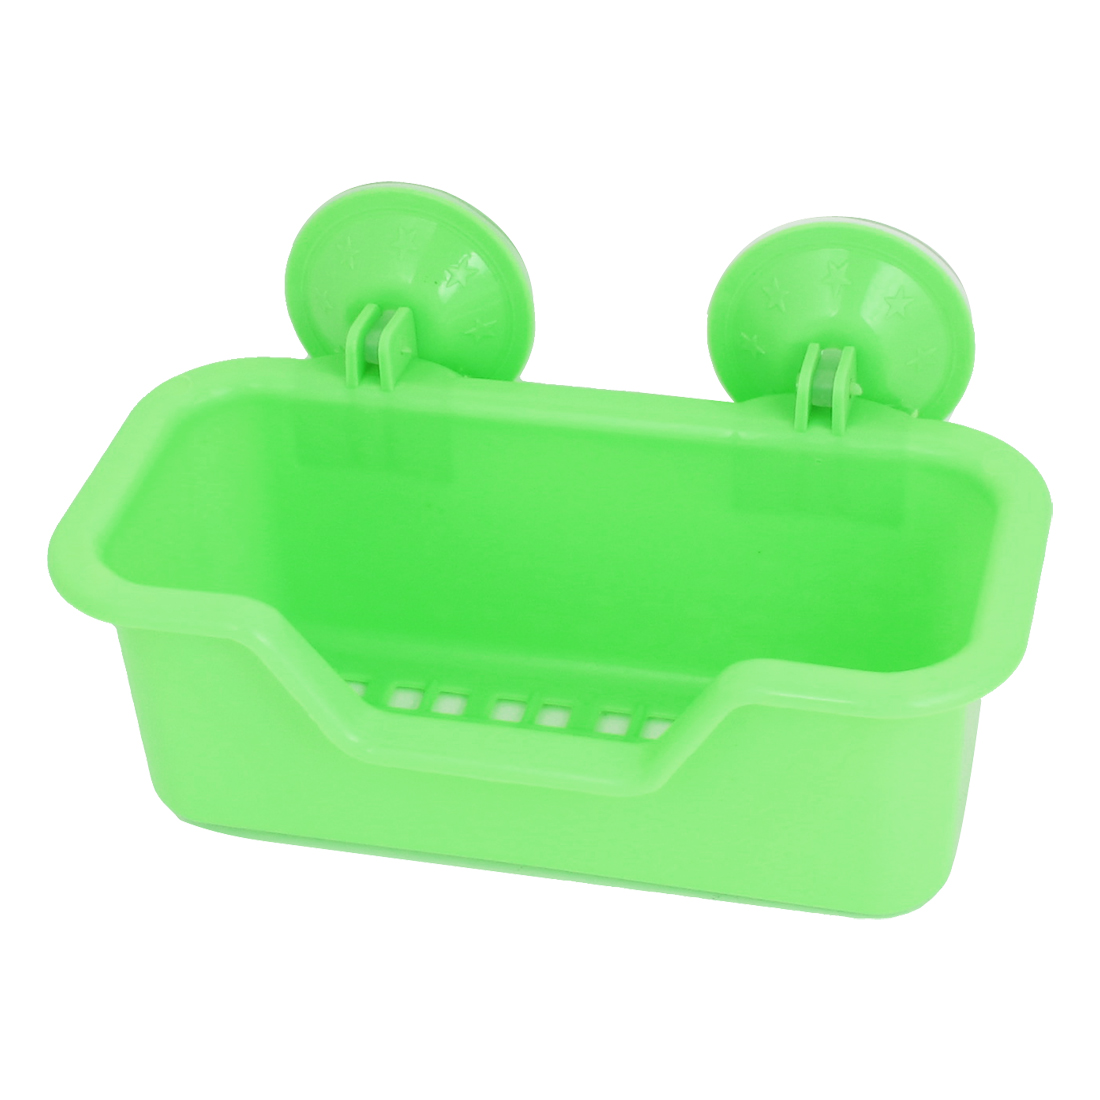 Bath Wall Basket Strong Suction Cup Absorption Holder Plastic Shelf Green